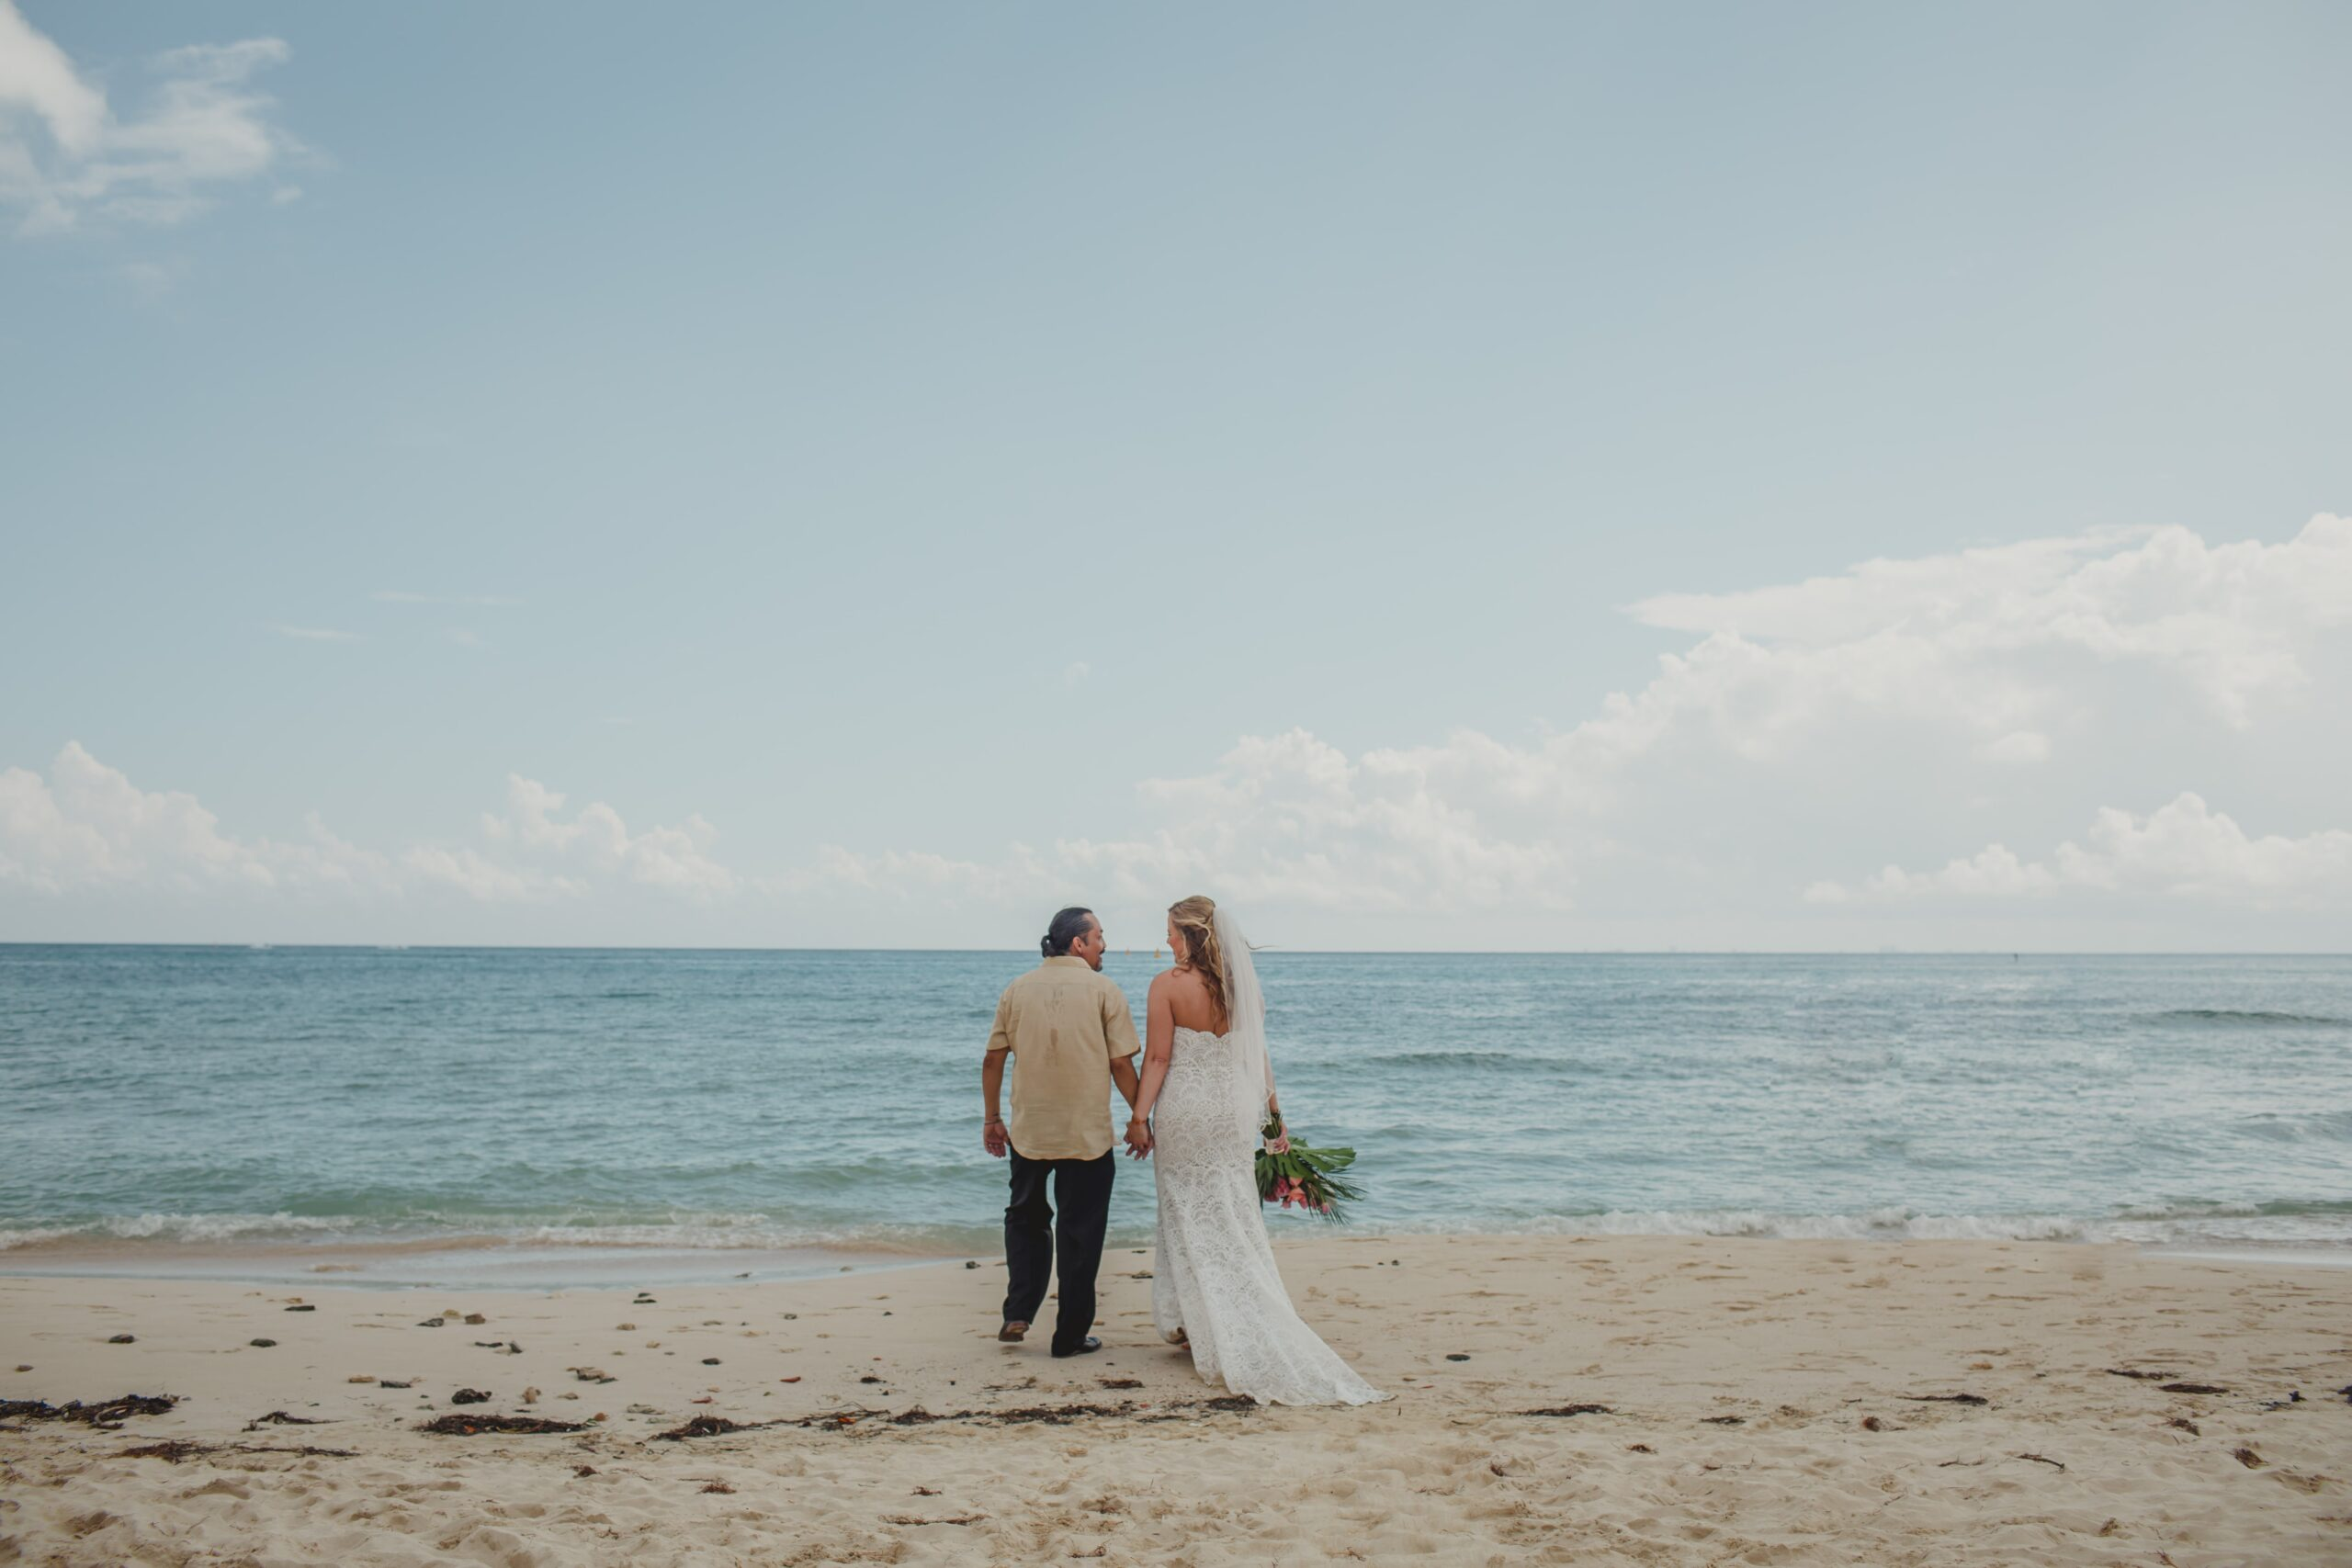 destination wedding paradise photo studio playa del carmen